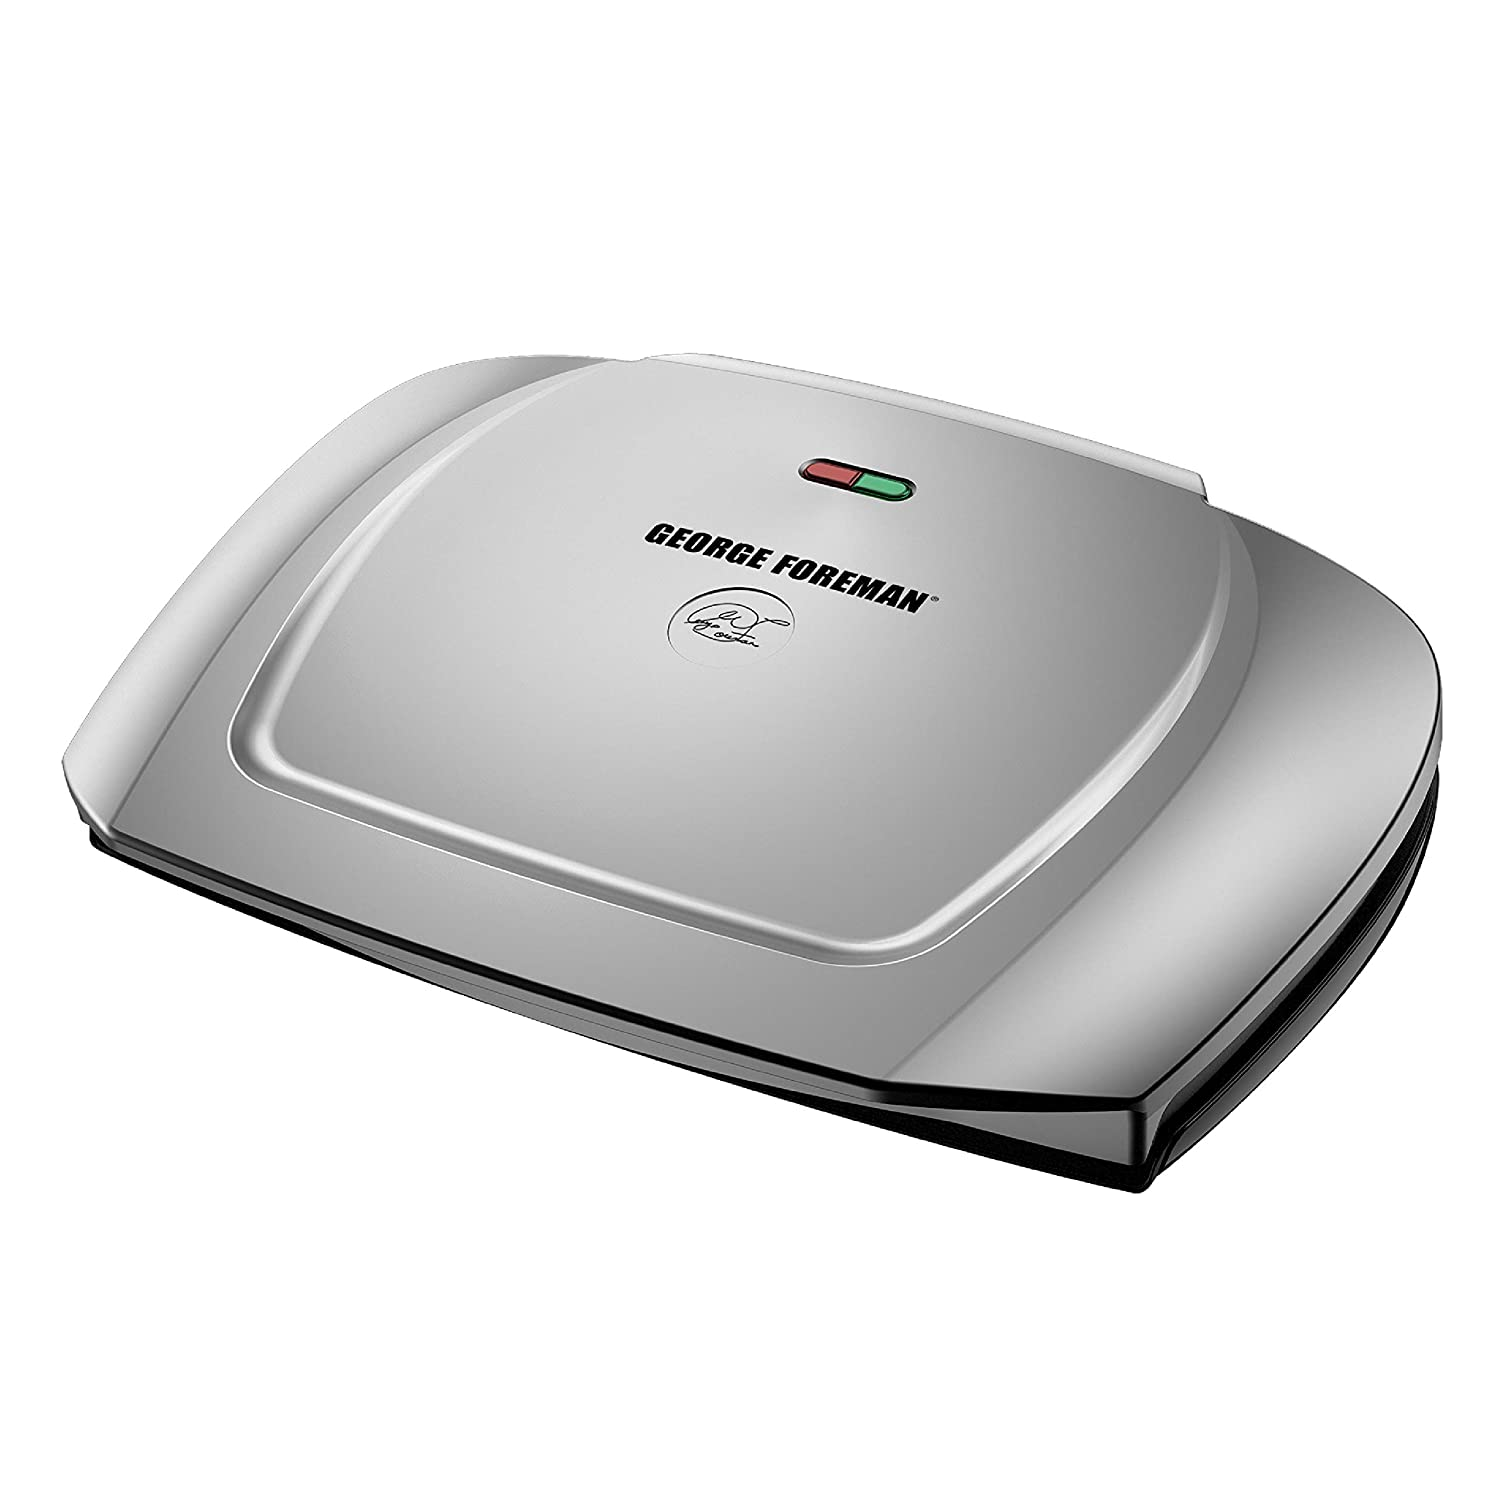 George Foreman 9-Serving Basic Plate Electric Grill and Panini Press, 144-Square-Inch, Platinum, GR2144P